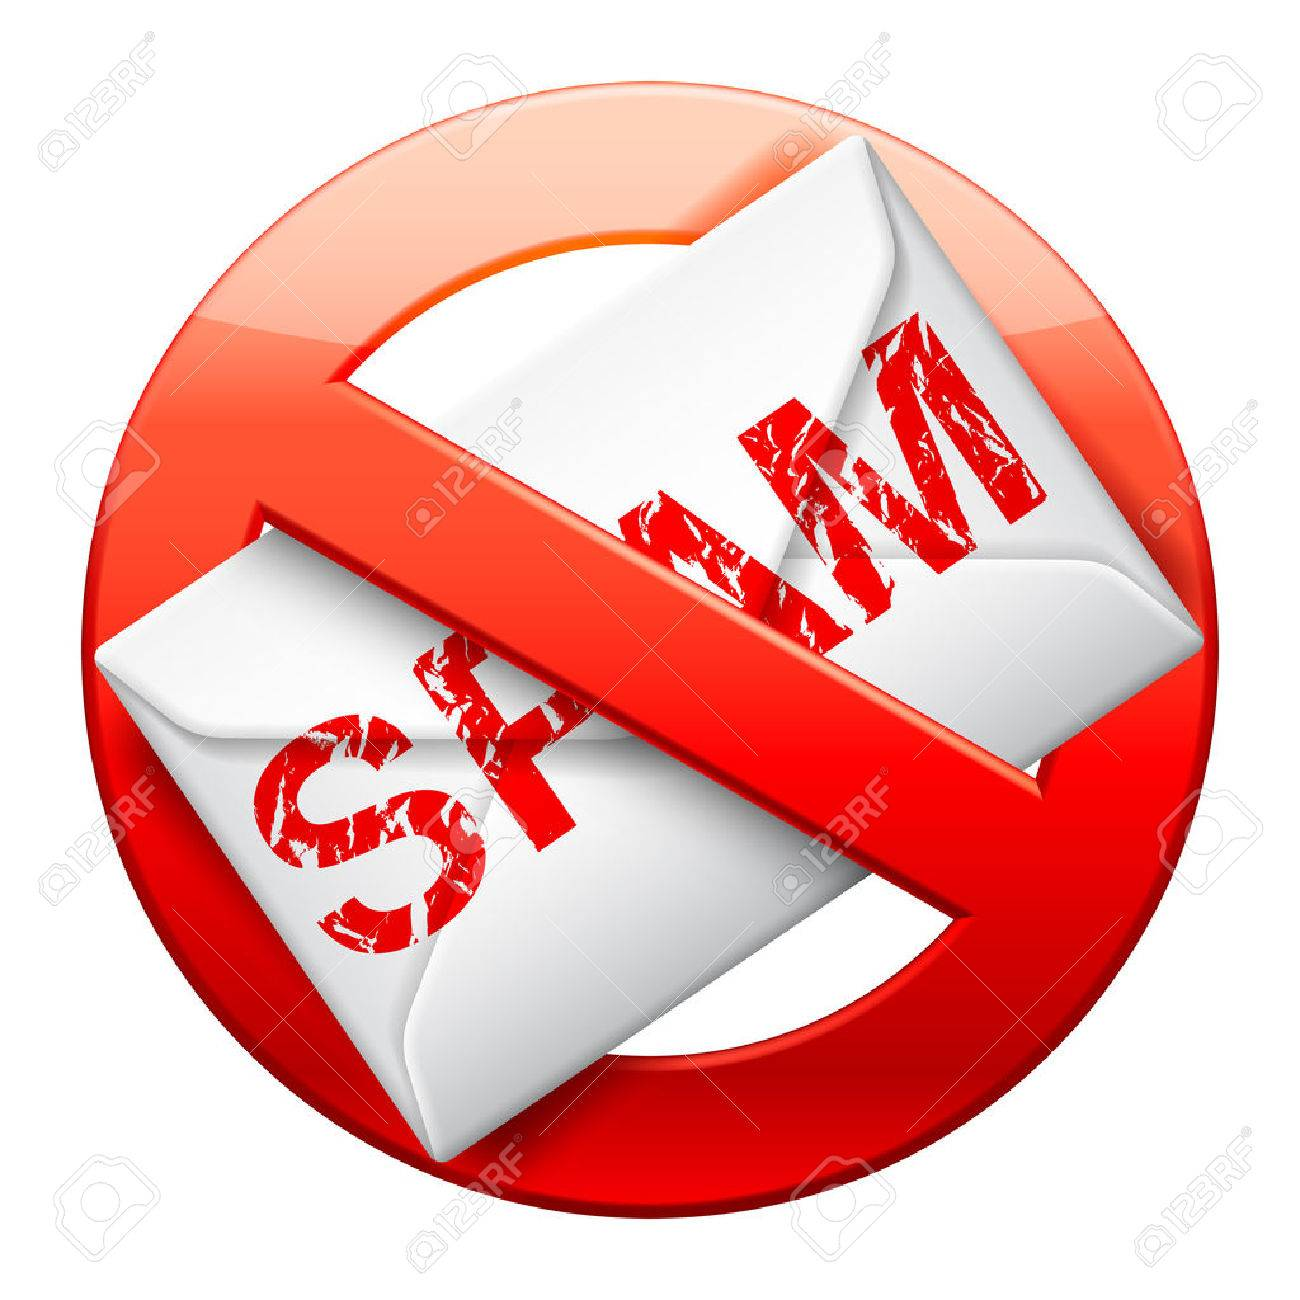 No Spam Sign. Royalty Free Cliparts, Vectors, And Stock ...